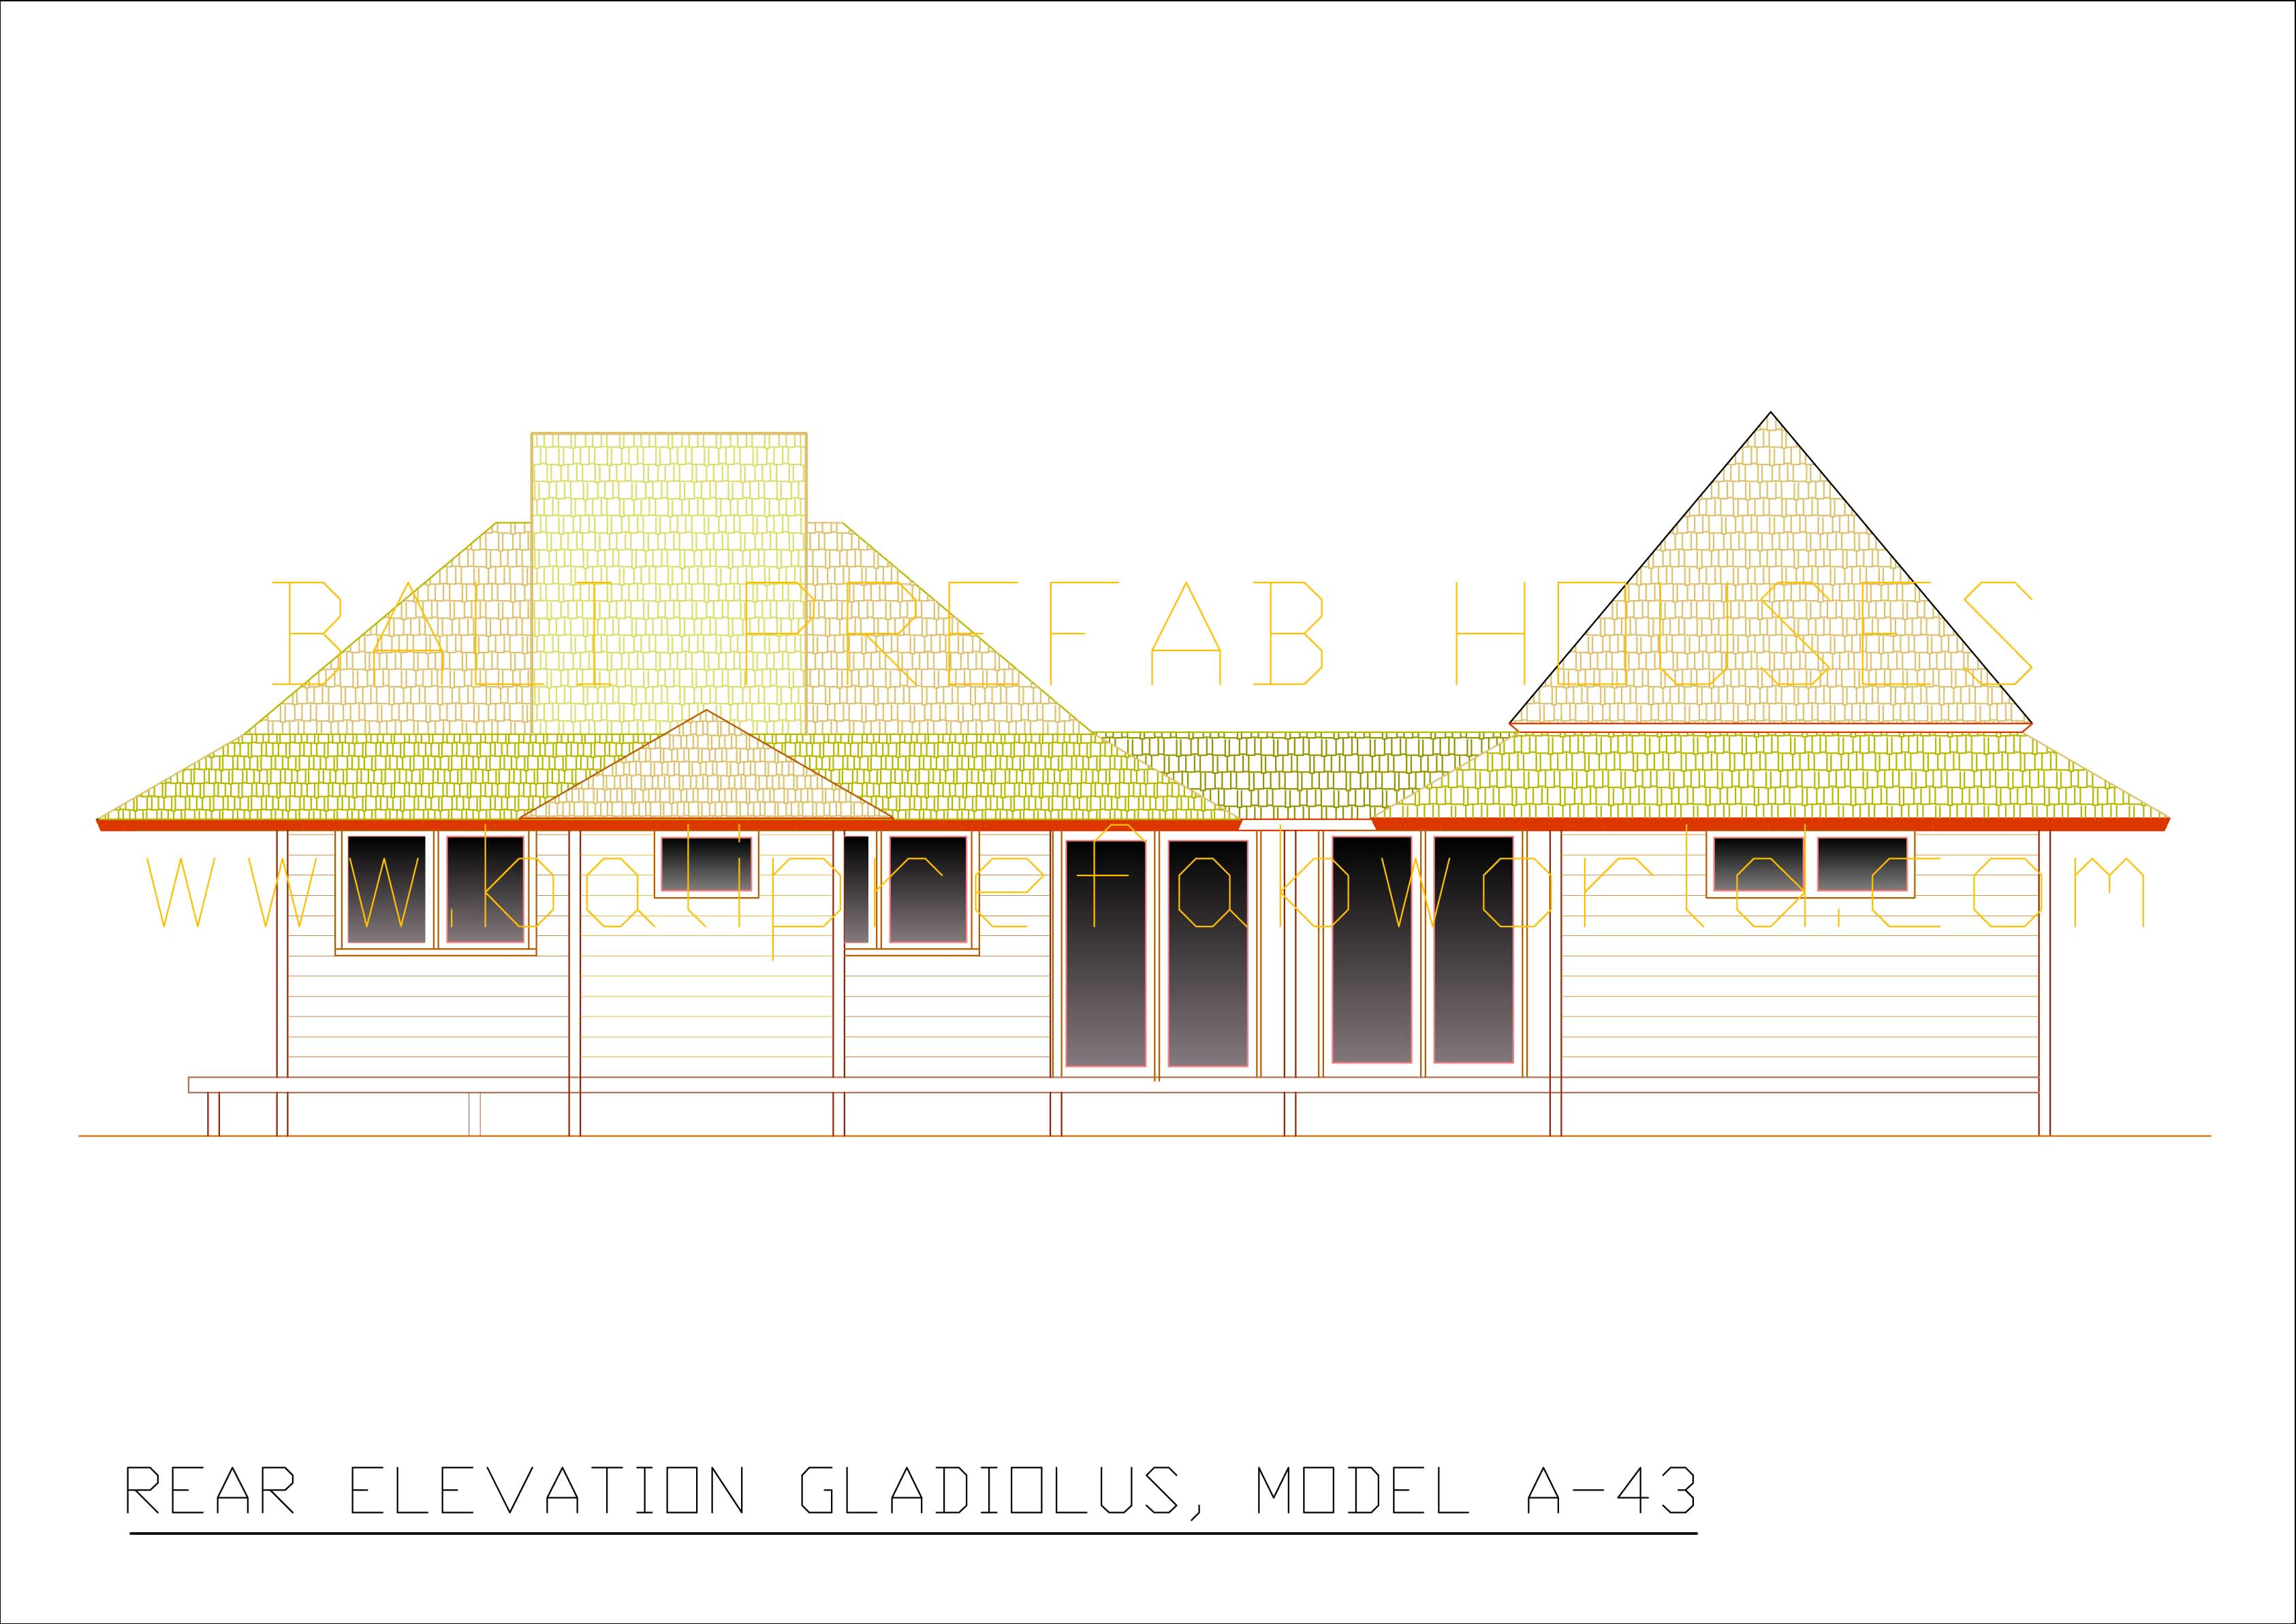 Gladiolus rear elevation